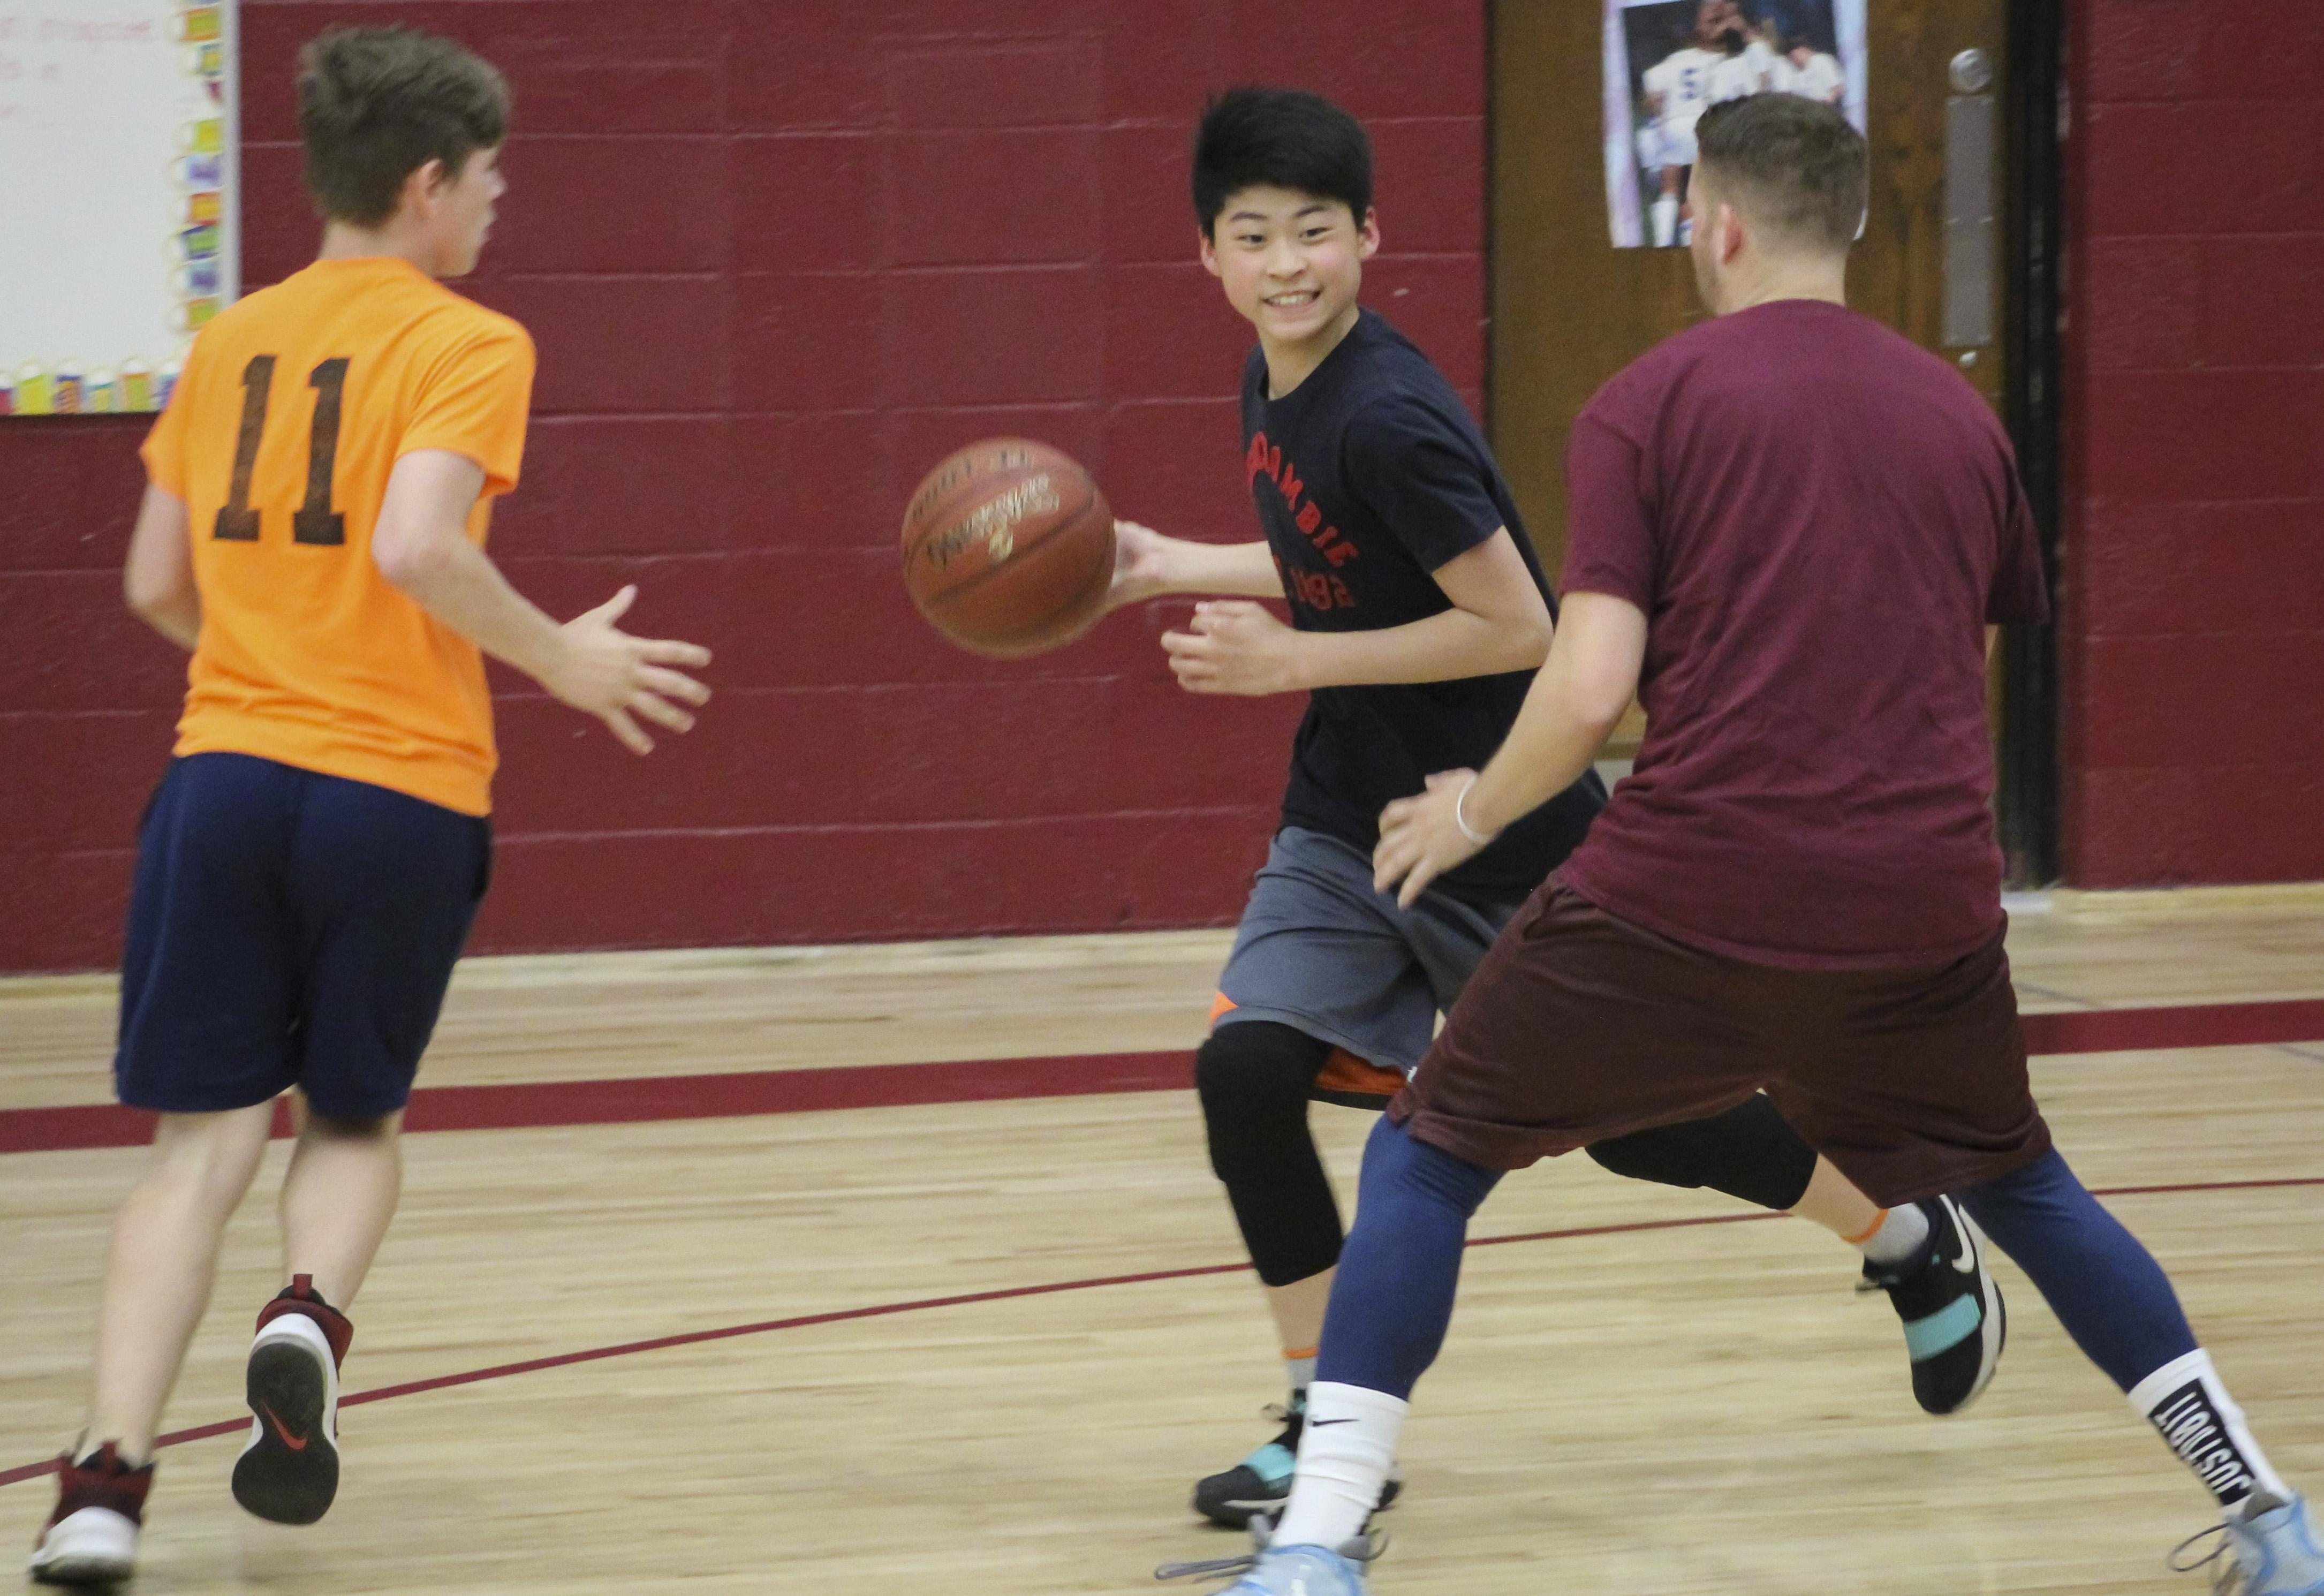 Two students and a teacher playing basketball